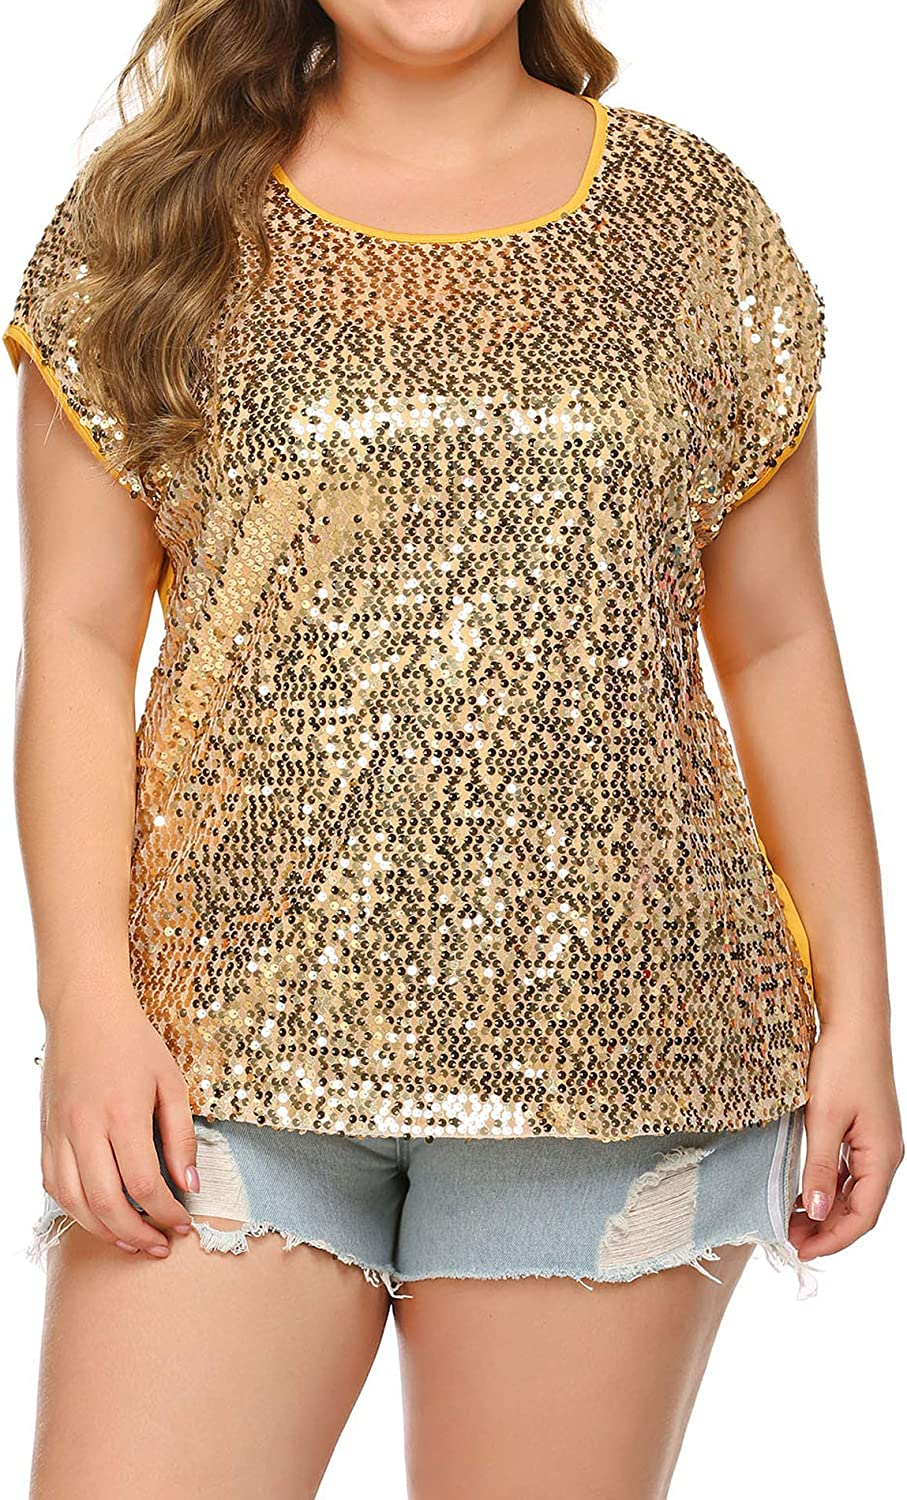 In Voland Women S Sequin Tops Plus Size Round Neck Sparkle Top Shimmer Glitter Short Sleeve T Shirt Tunic Blouse At Amazon Women S Clothing Store